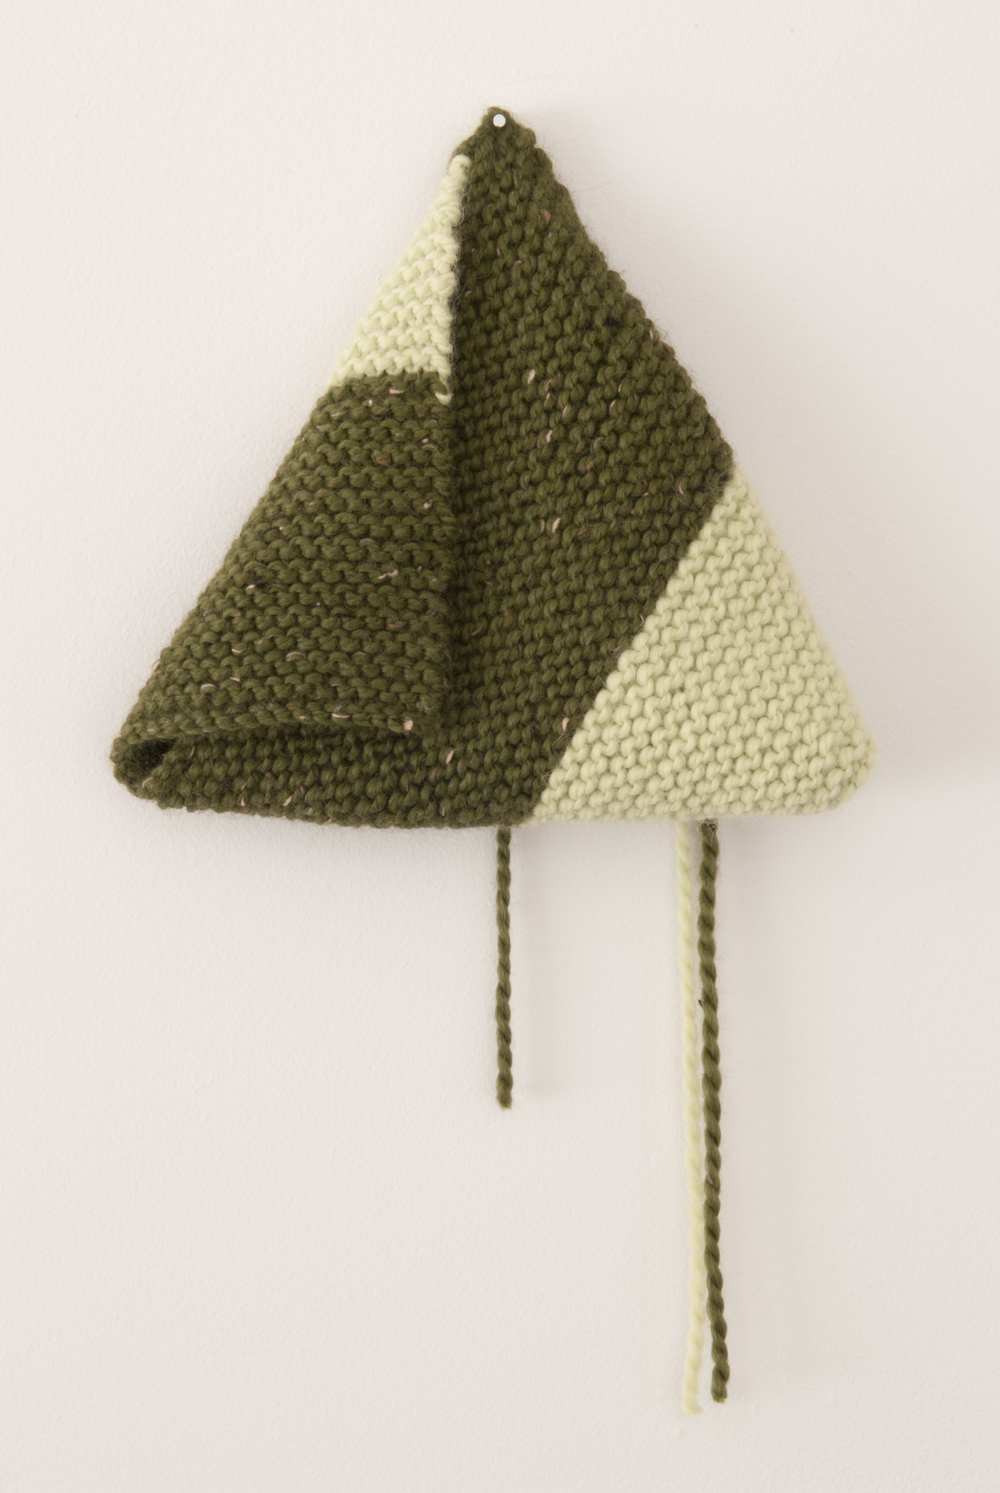 Ann Romano  | 2013  | hand knitted cotton and wool | 11 x 11